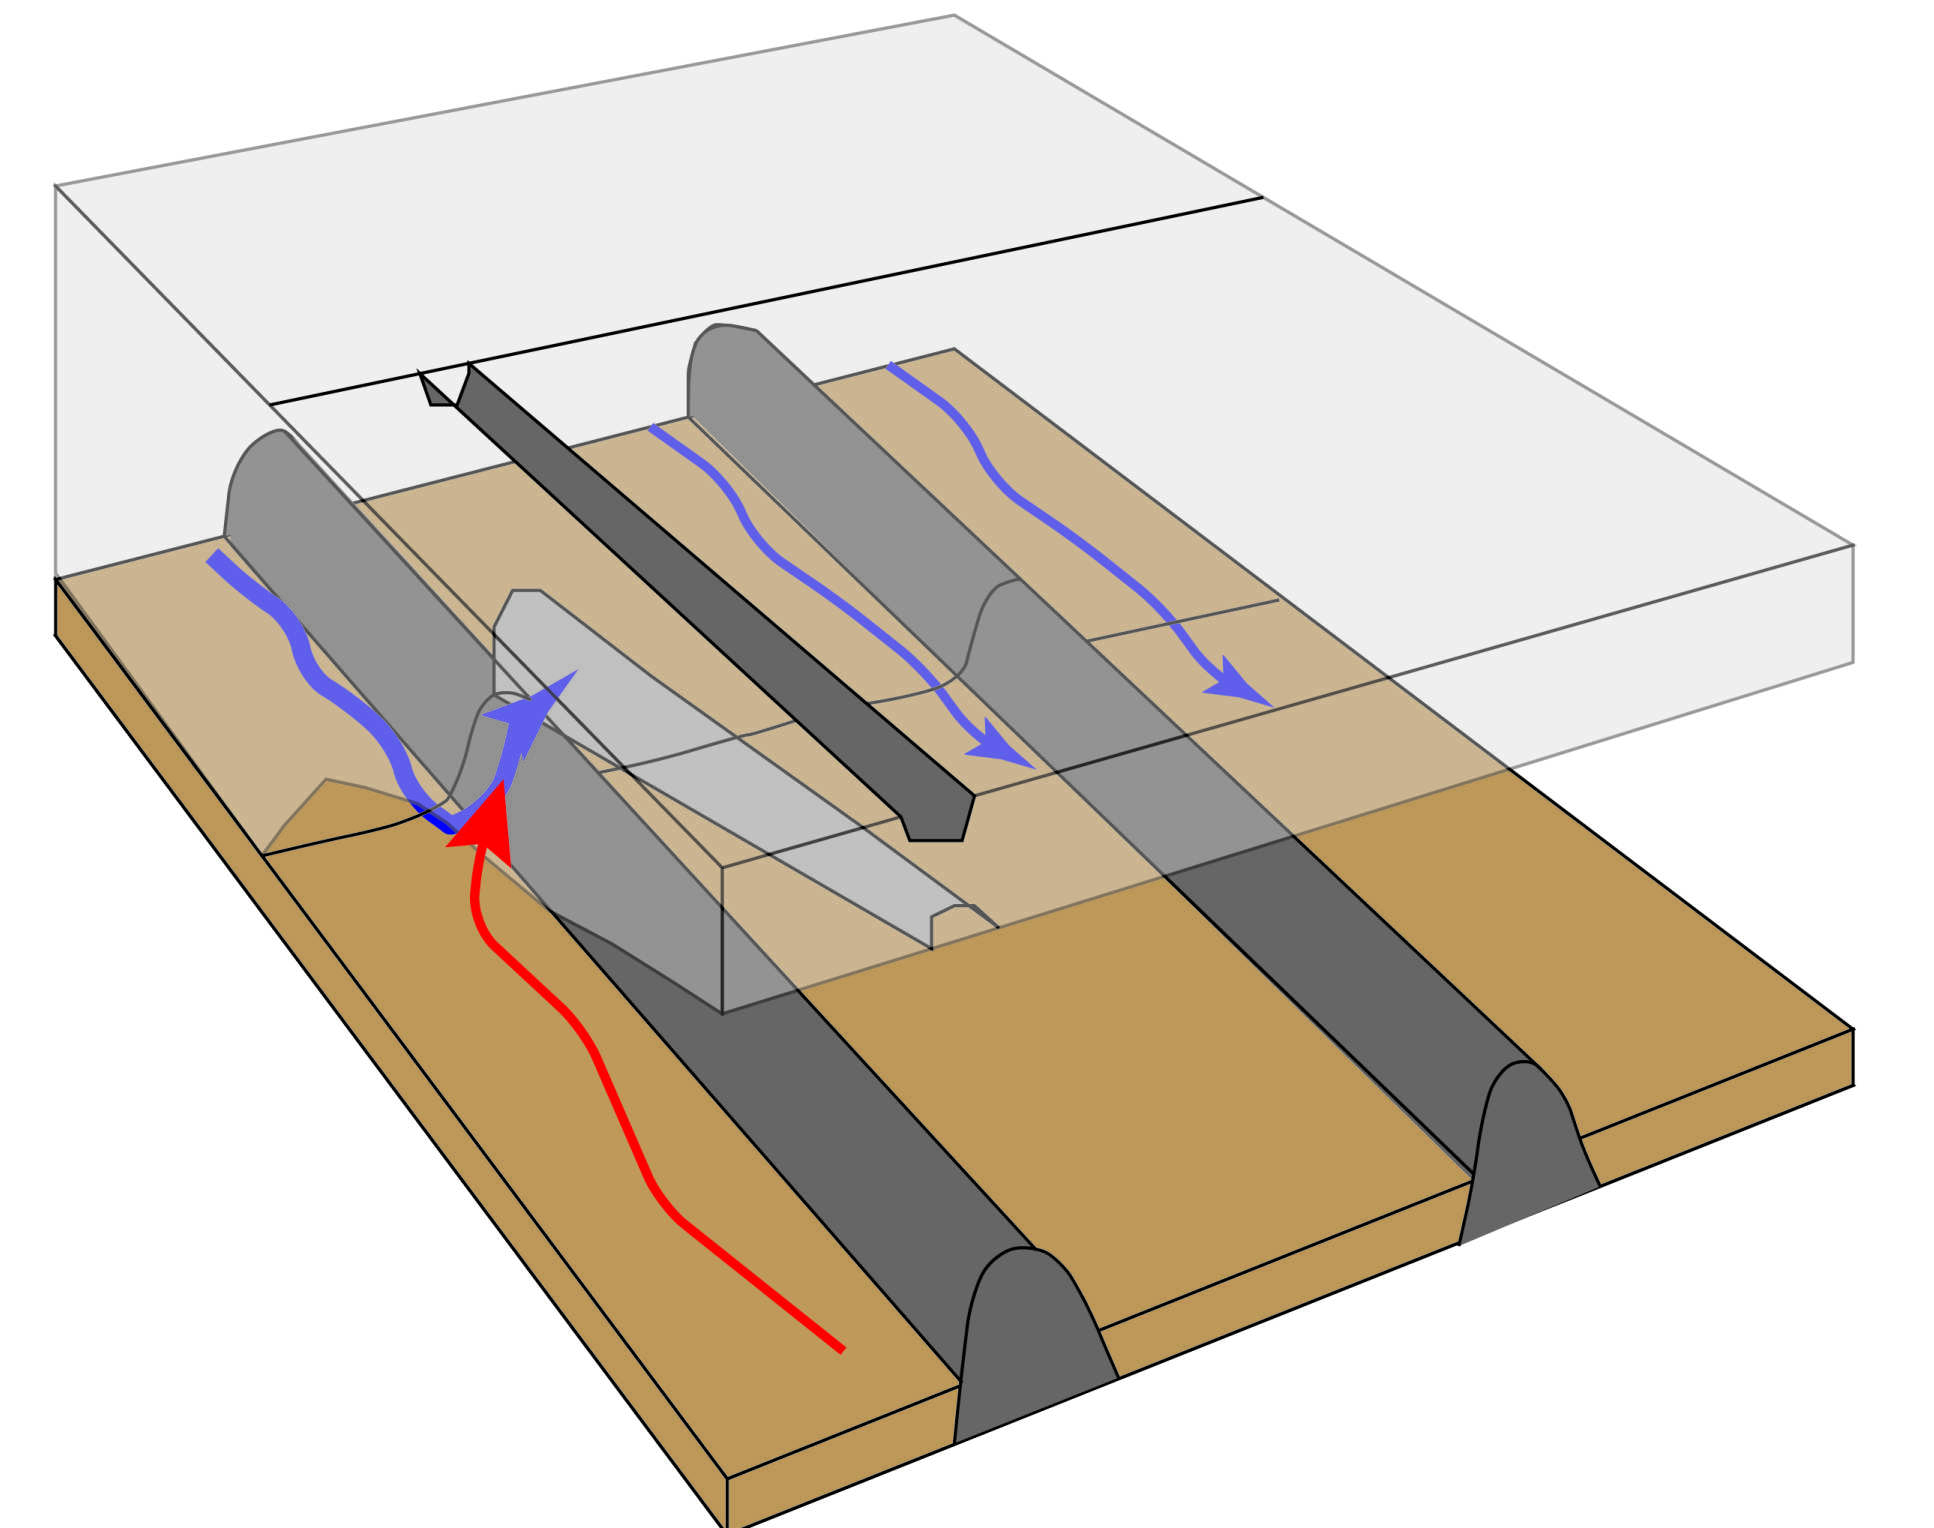 As the ice, flowing from upper-left to lower-right, encounters a hill beneath the ice (light grey shape), a cavity is created under the ice shelf. Water (red and blue arrows) feeds into the cavity, melting a channel that is reflected on the ice surface (dark grey channel)